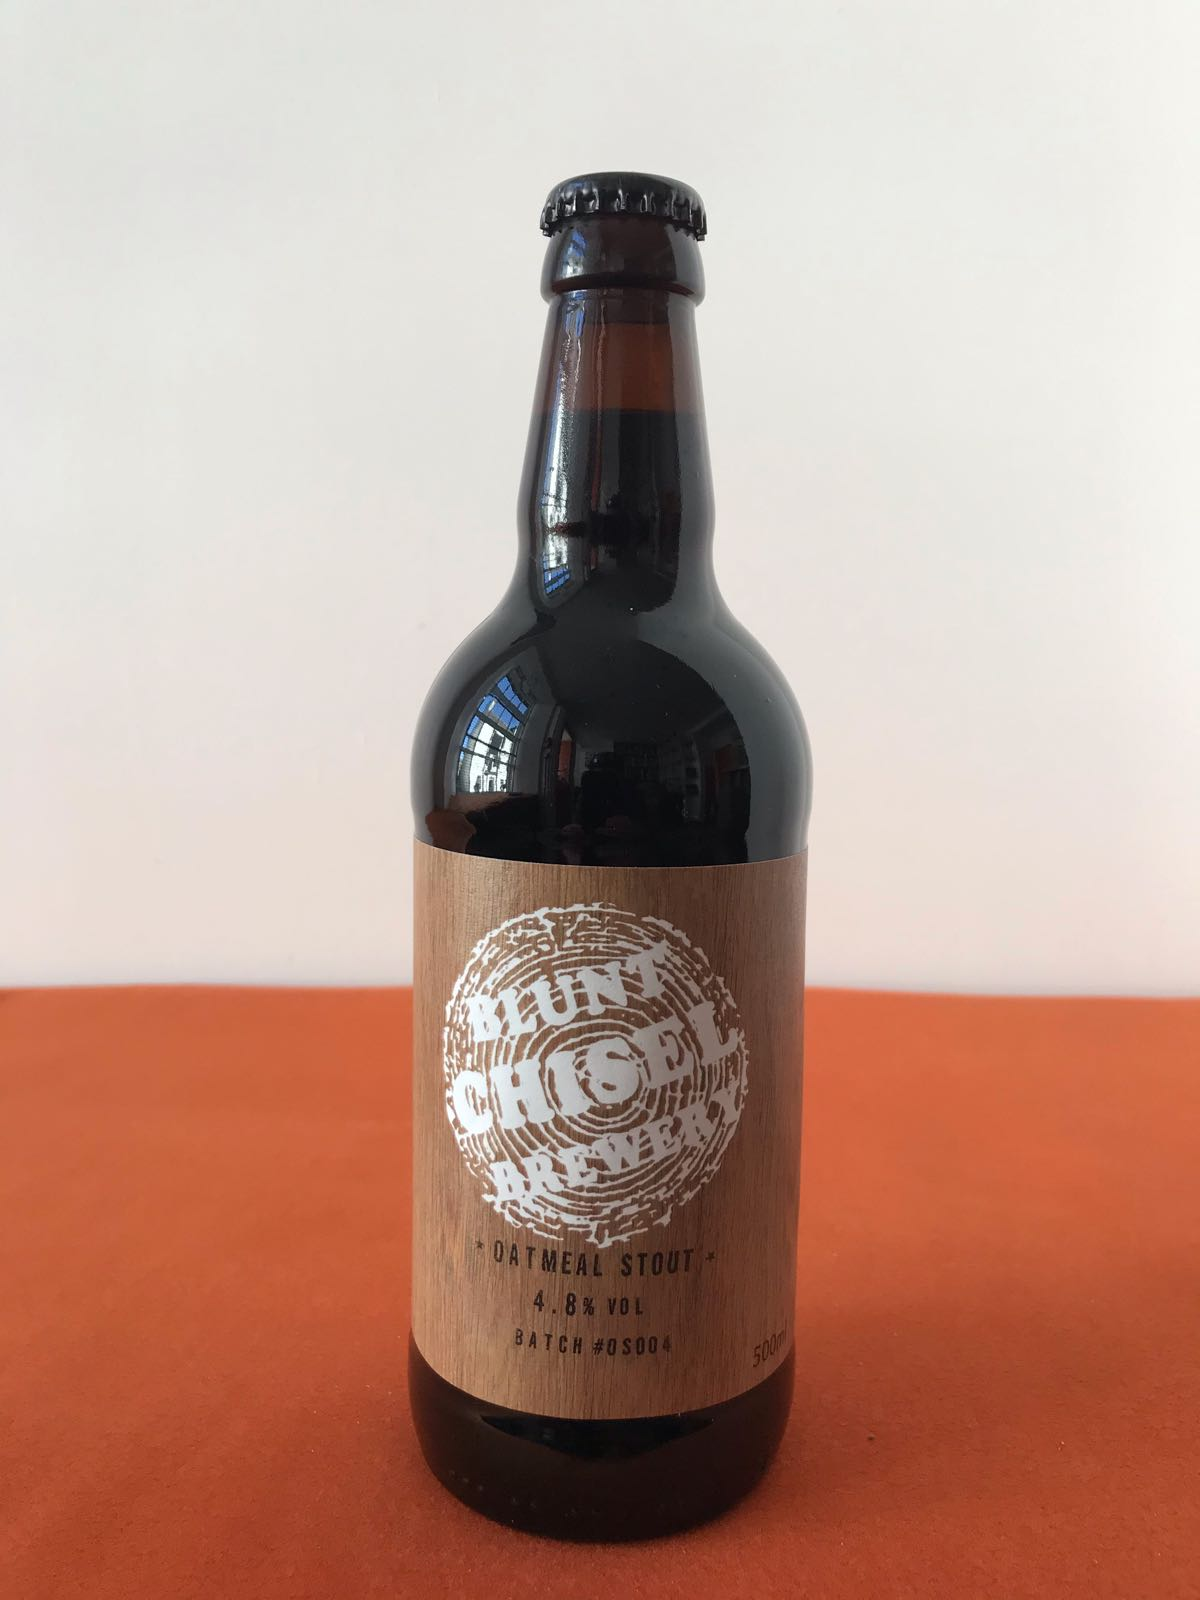 Blunt Chisel Brewery: Oatmeal Stout